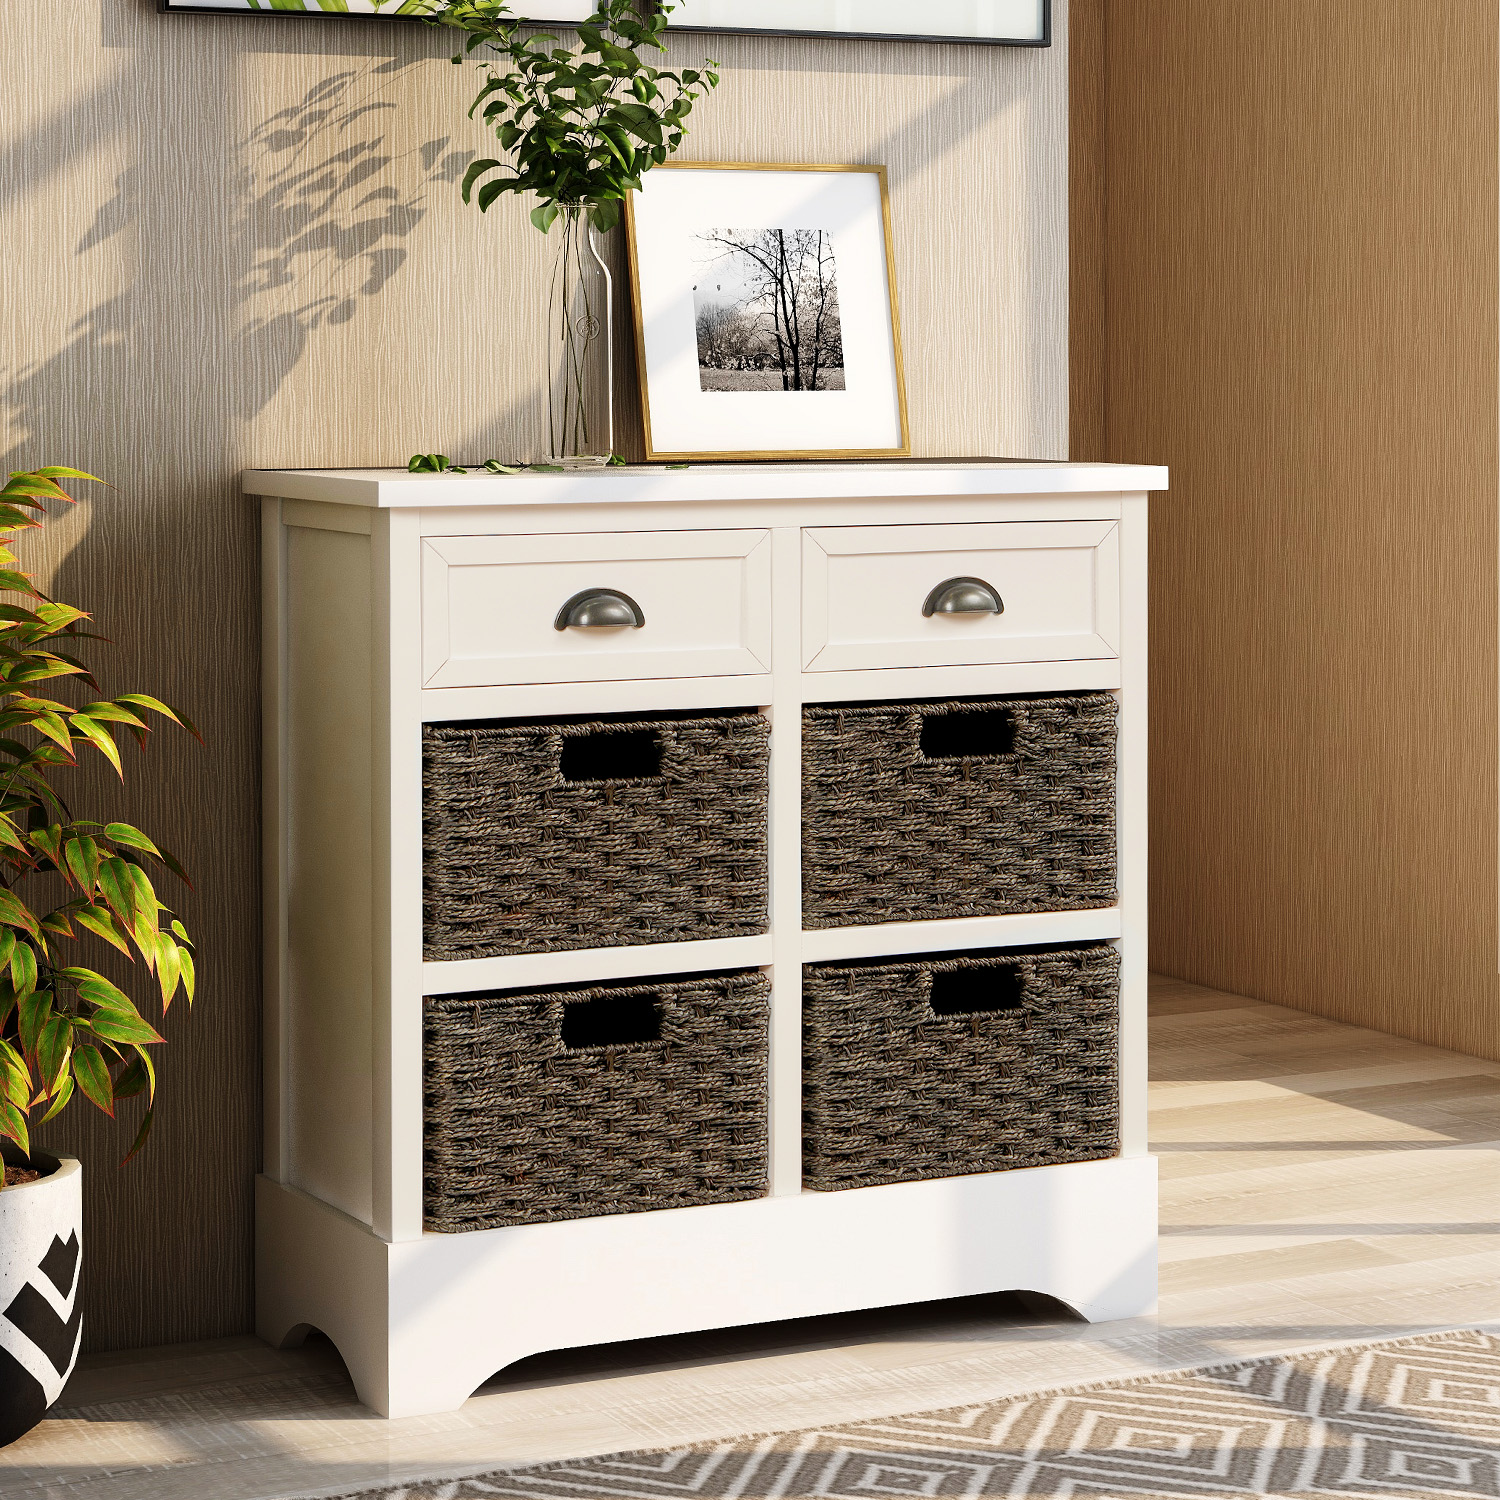 Rustic Storage Cabinet With Two Drawers And Four Rattan Basket